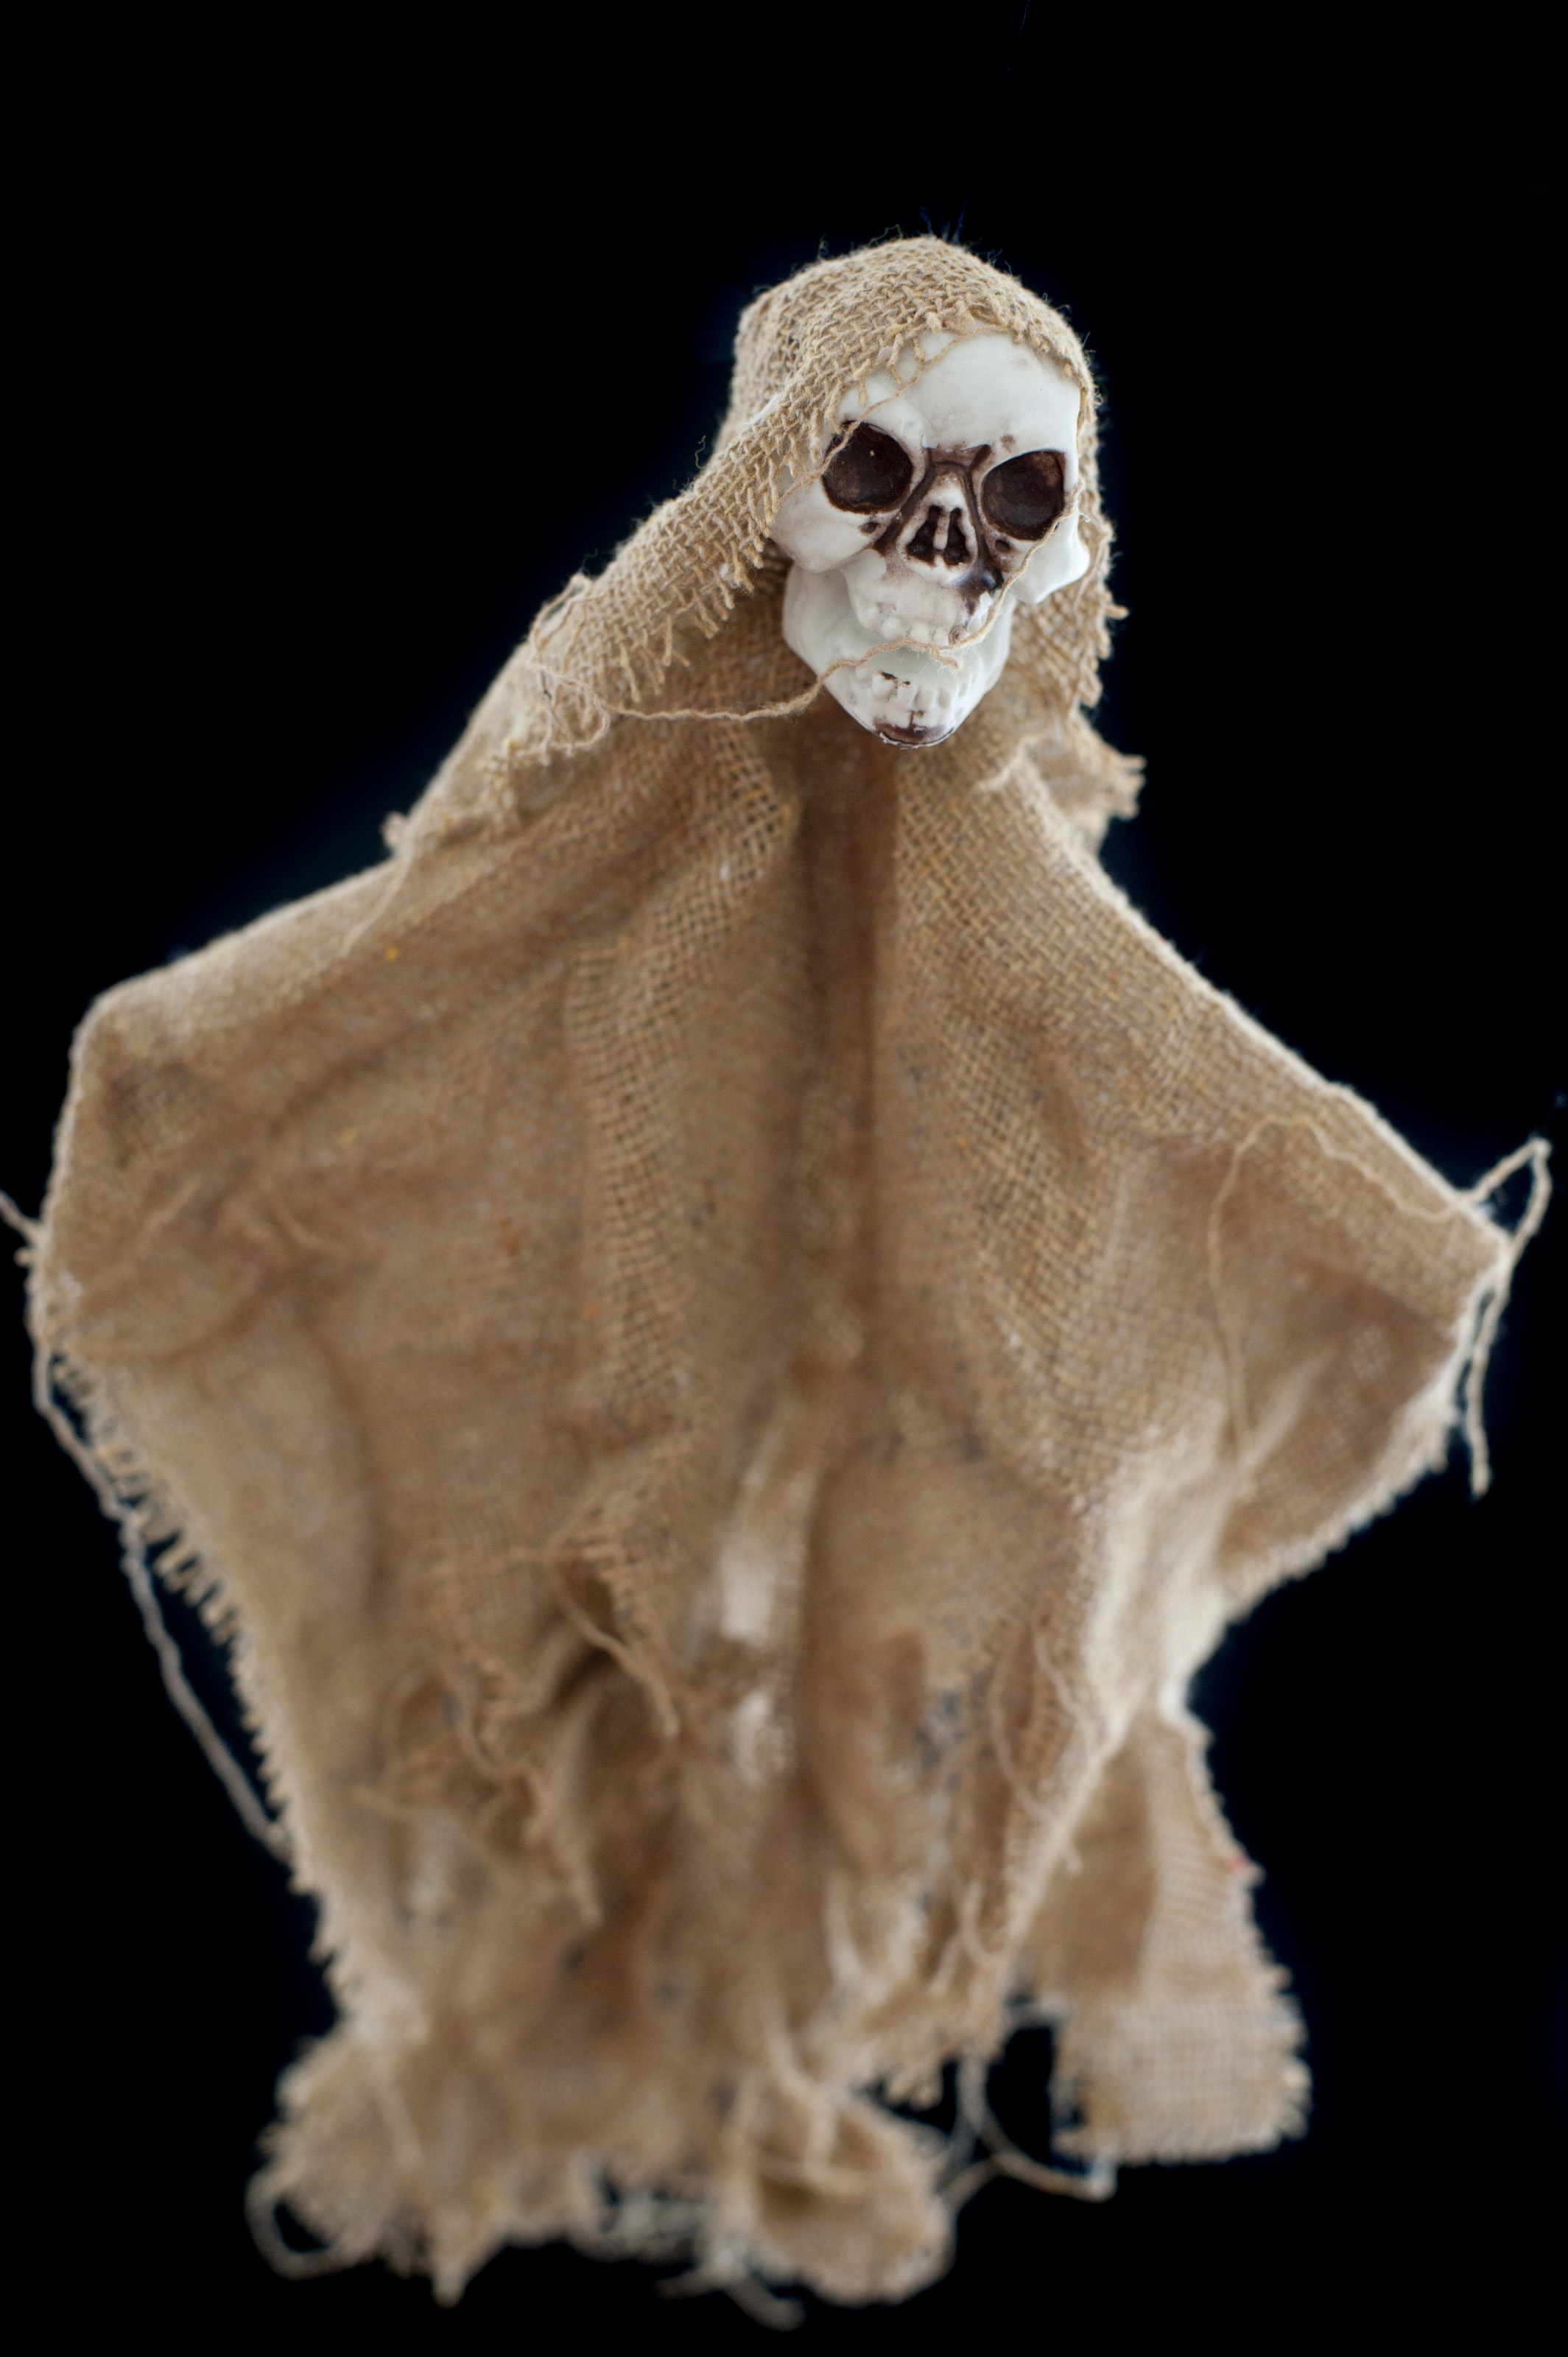 Spooky Halloween skull decoration draped in torn hessian or burlap with deep eye sockets on a black background for horror themed concepts